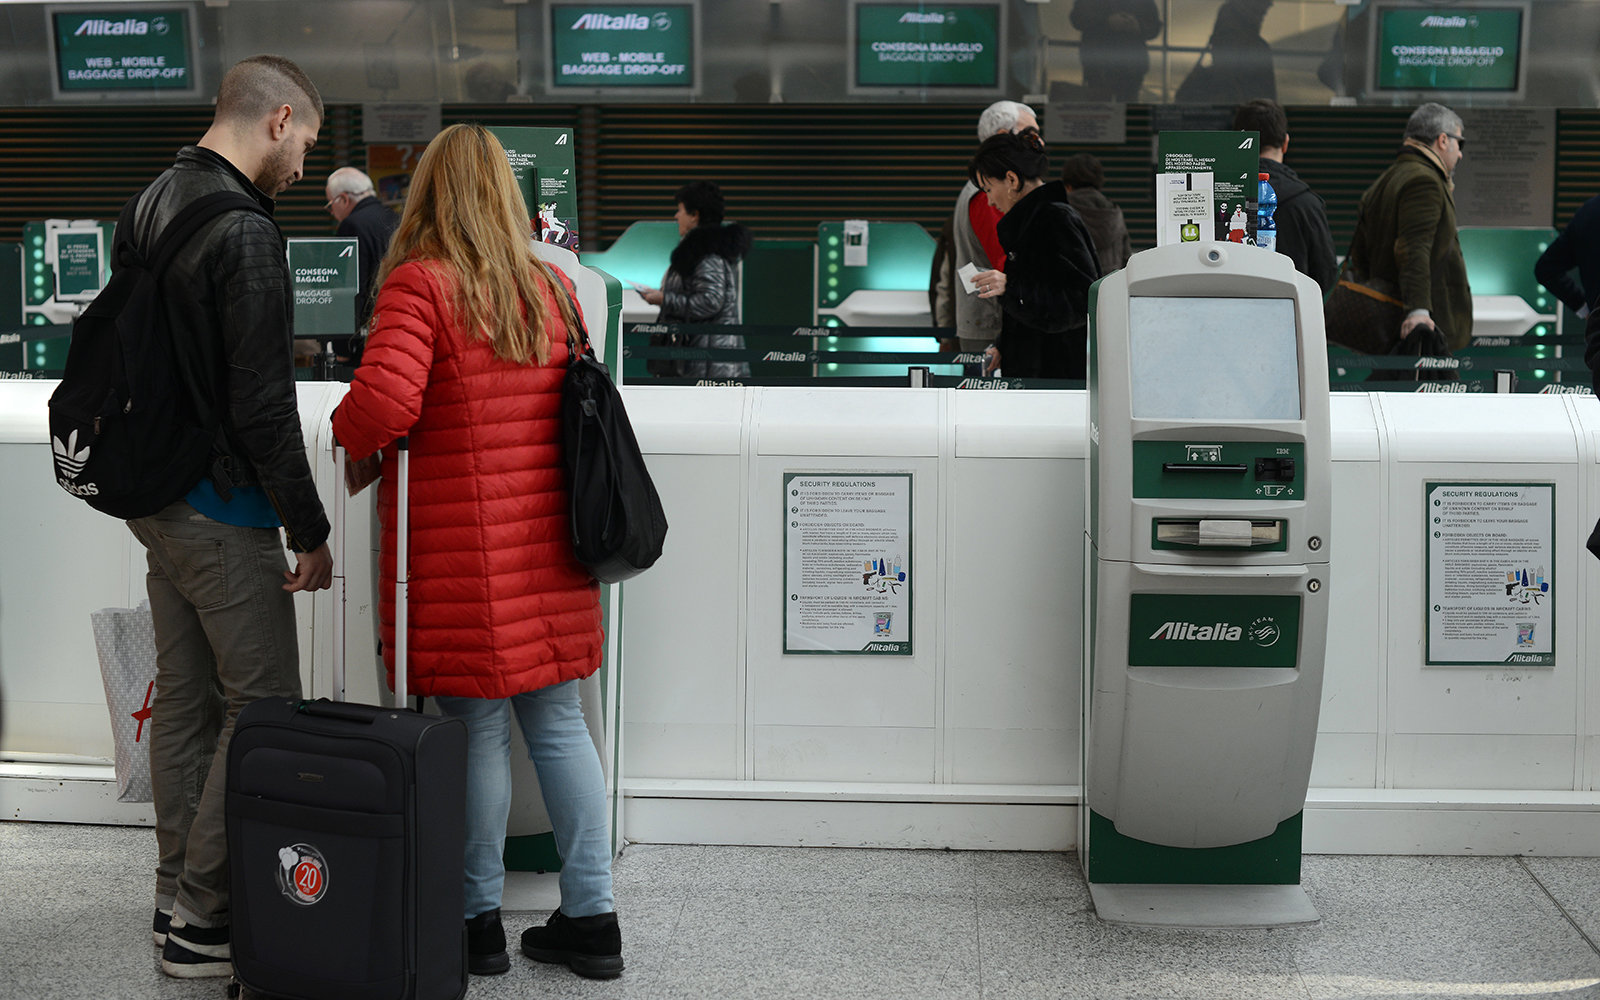 Alitalia check-in counter